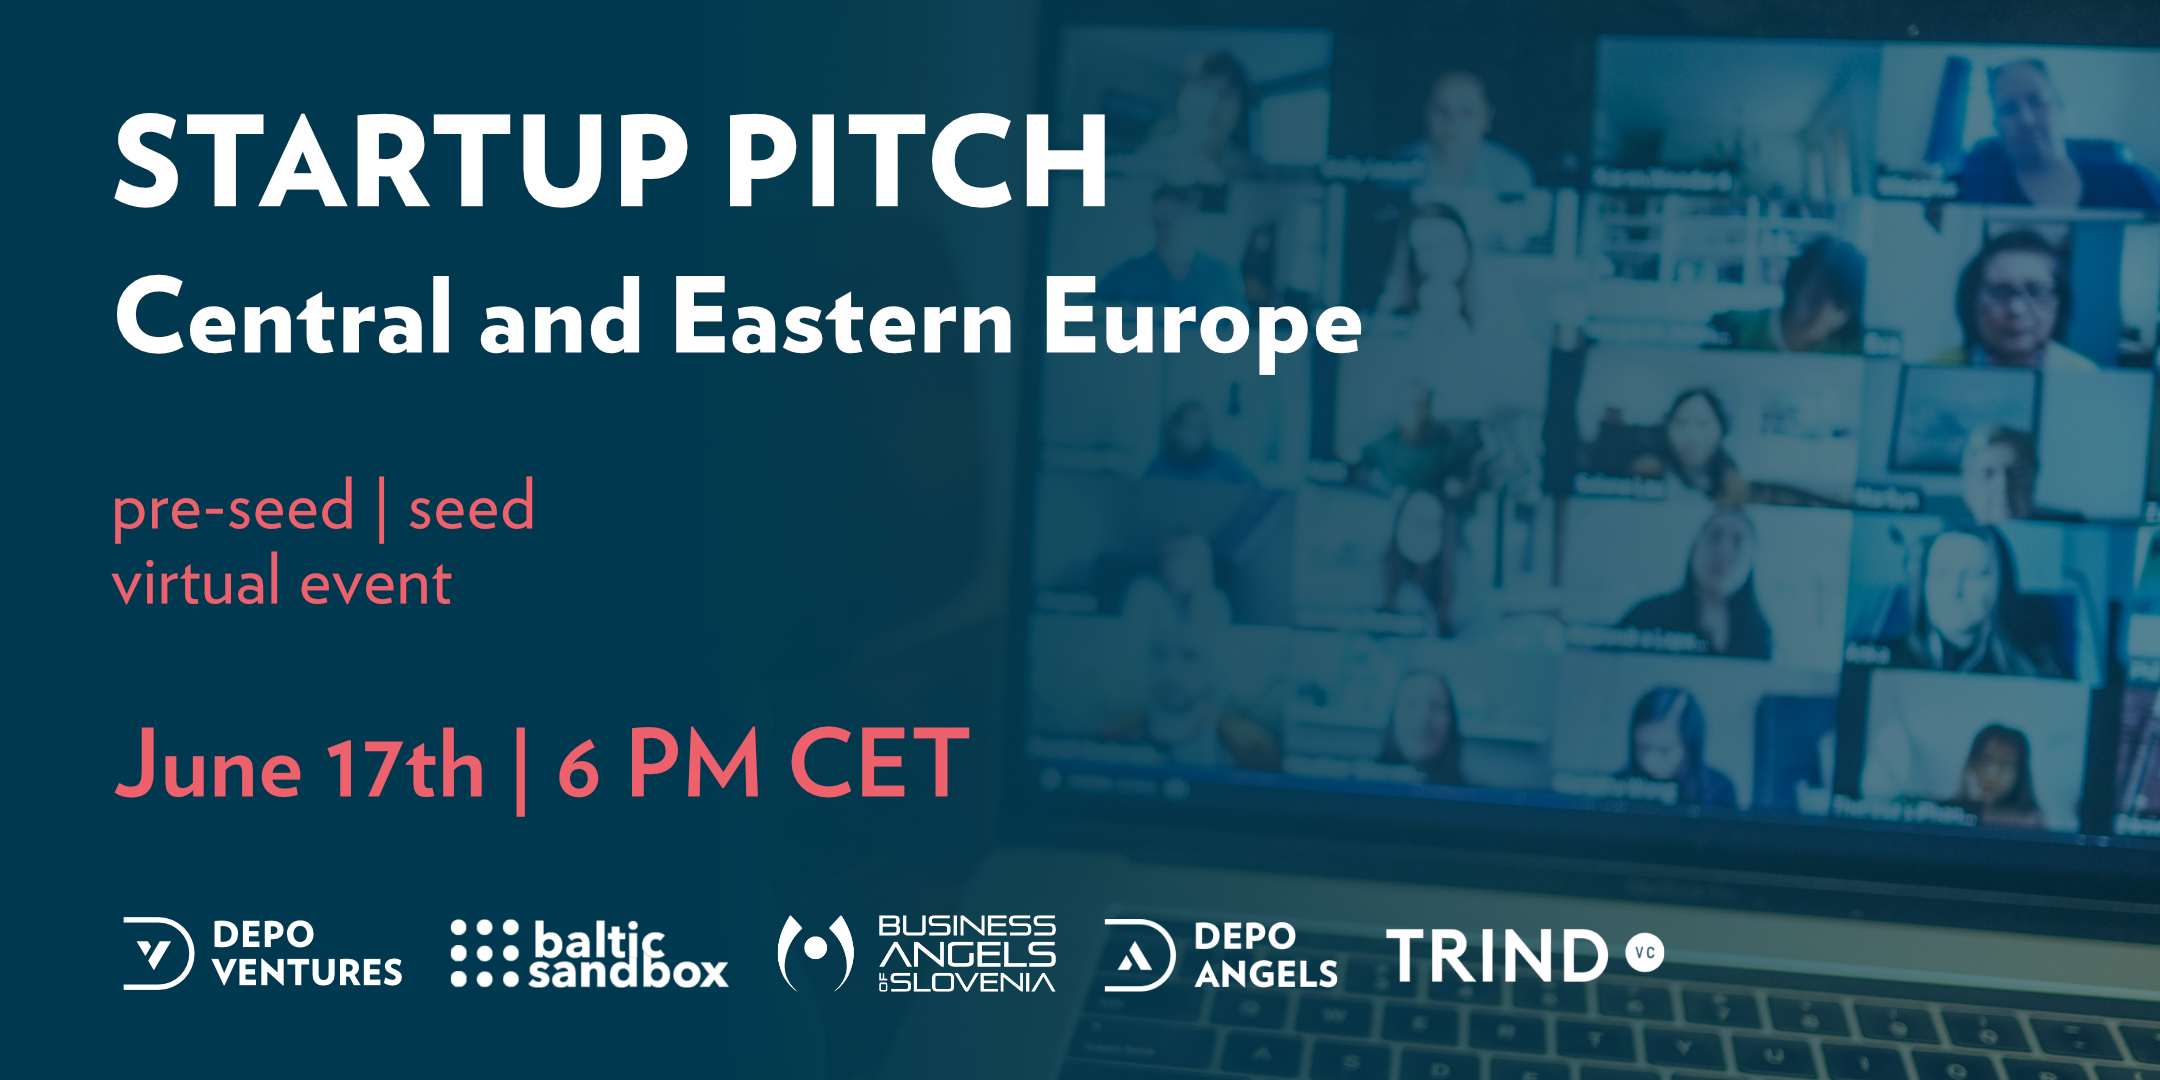 DEPO VENTURE Startup Pitch, CEE edition